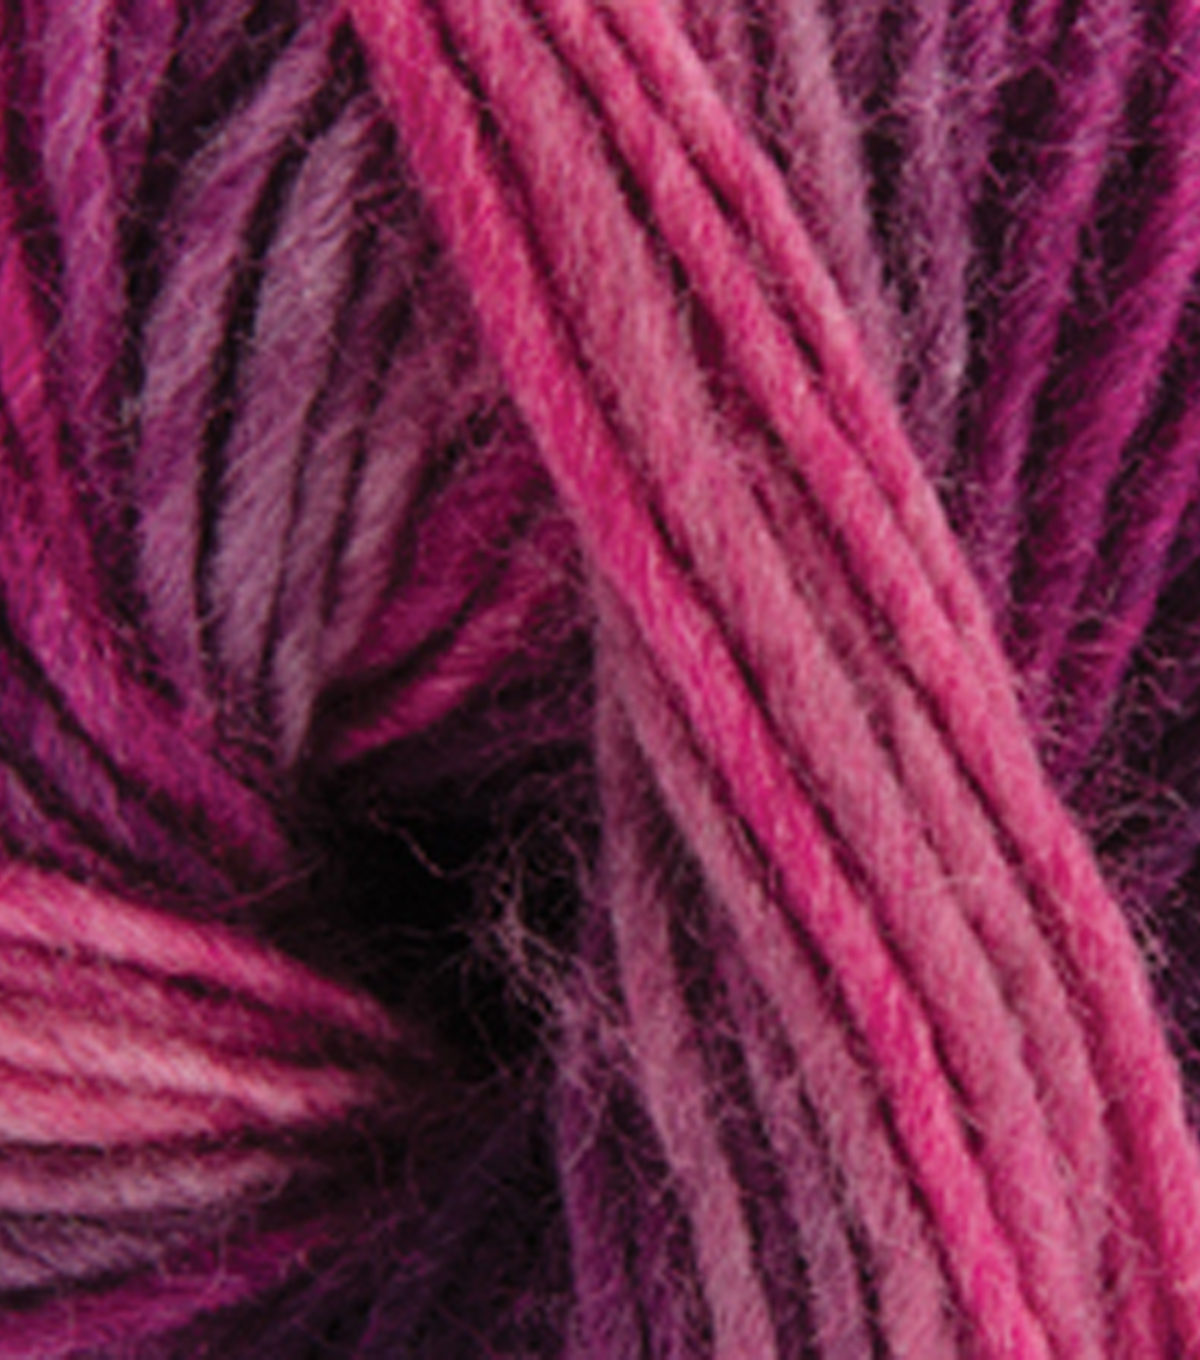 Red Heart Boutique Unforgettable Yarn, Petunia